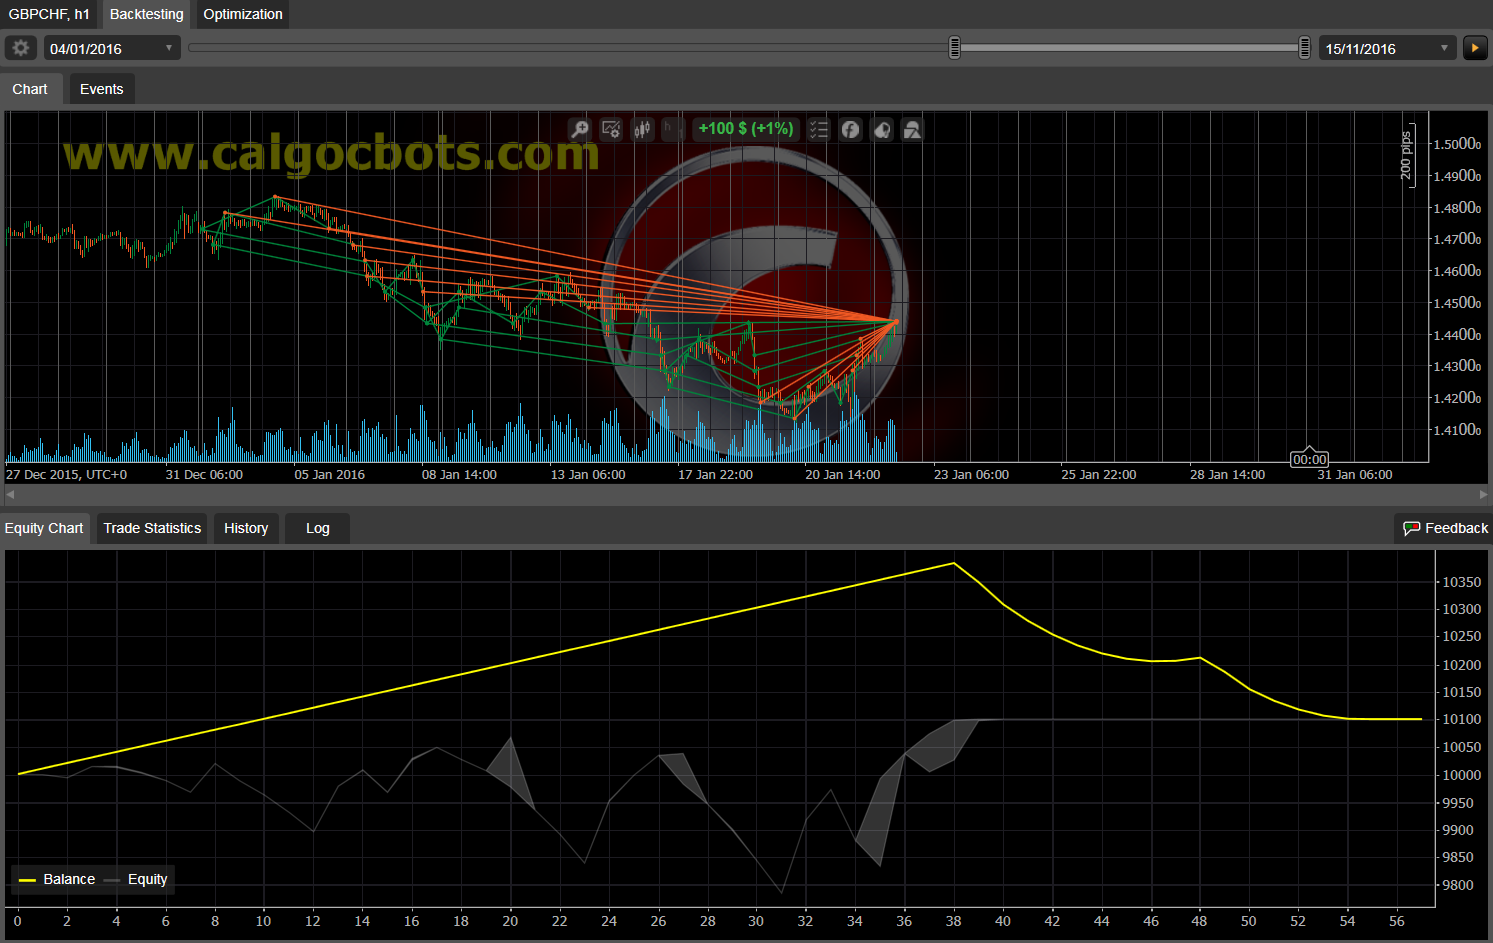 Dual Grid Hedge GBP CHF 1h cAlgo cBots cTrader 100 50 100 - 06